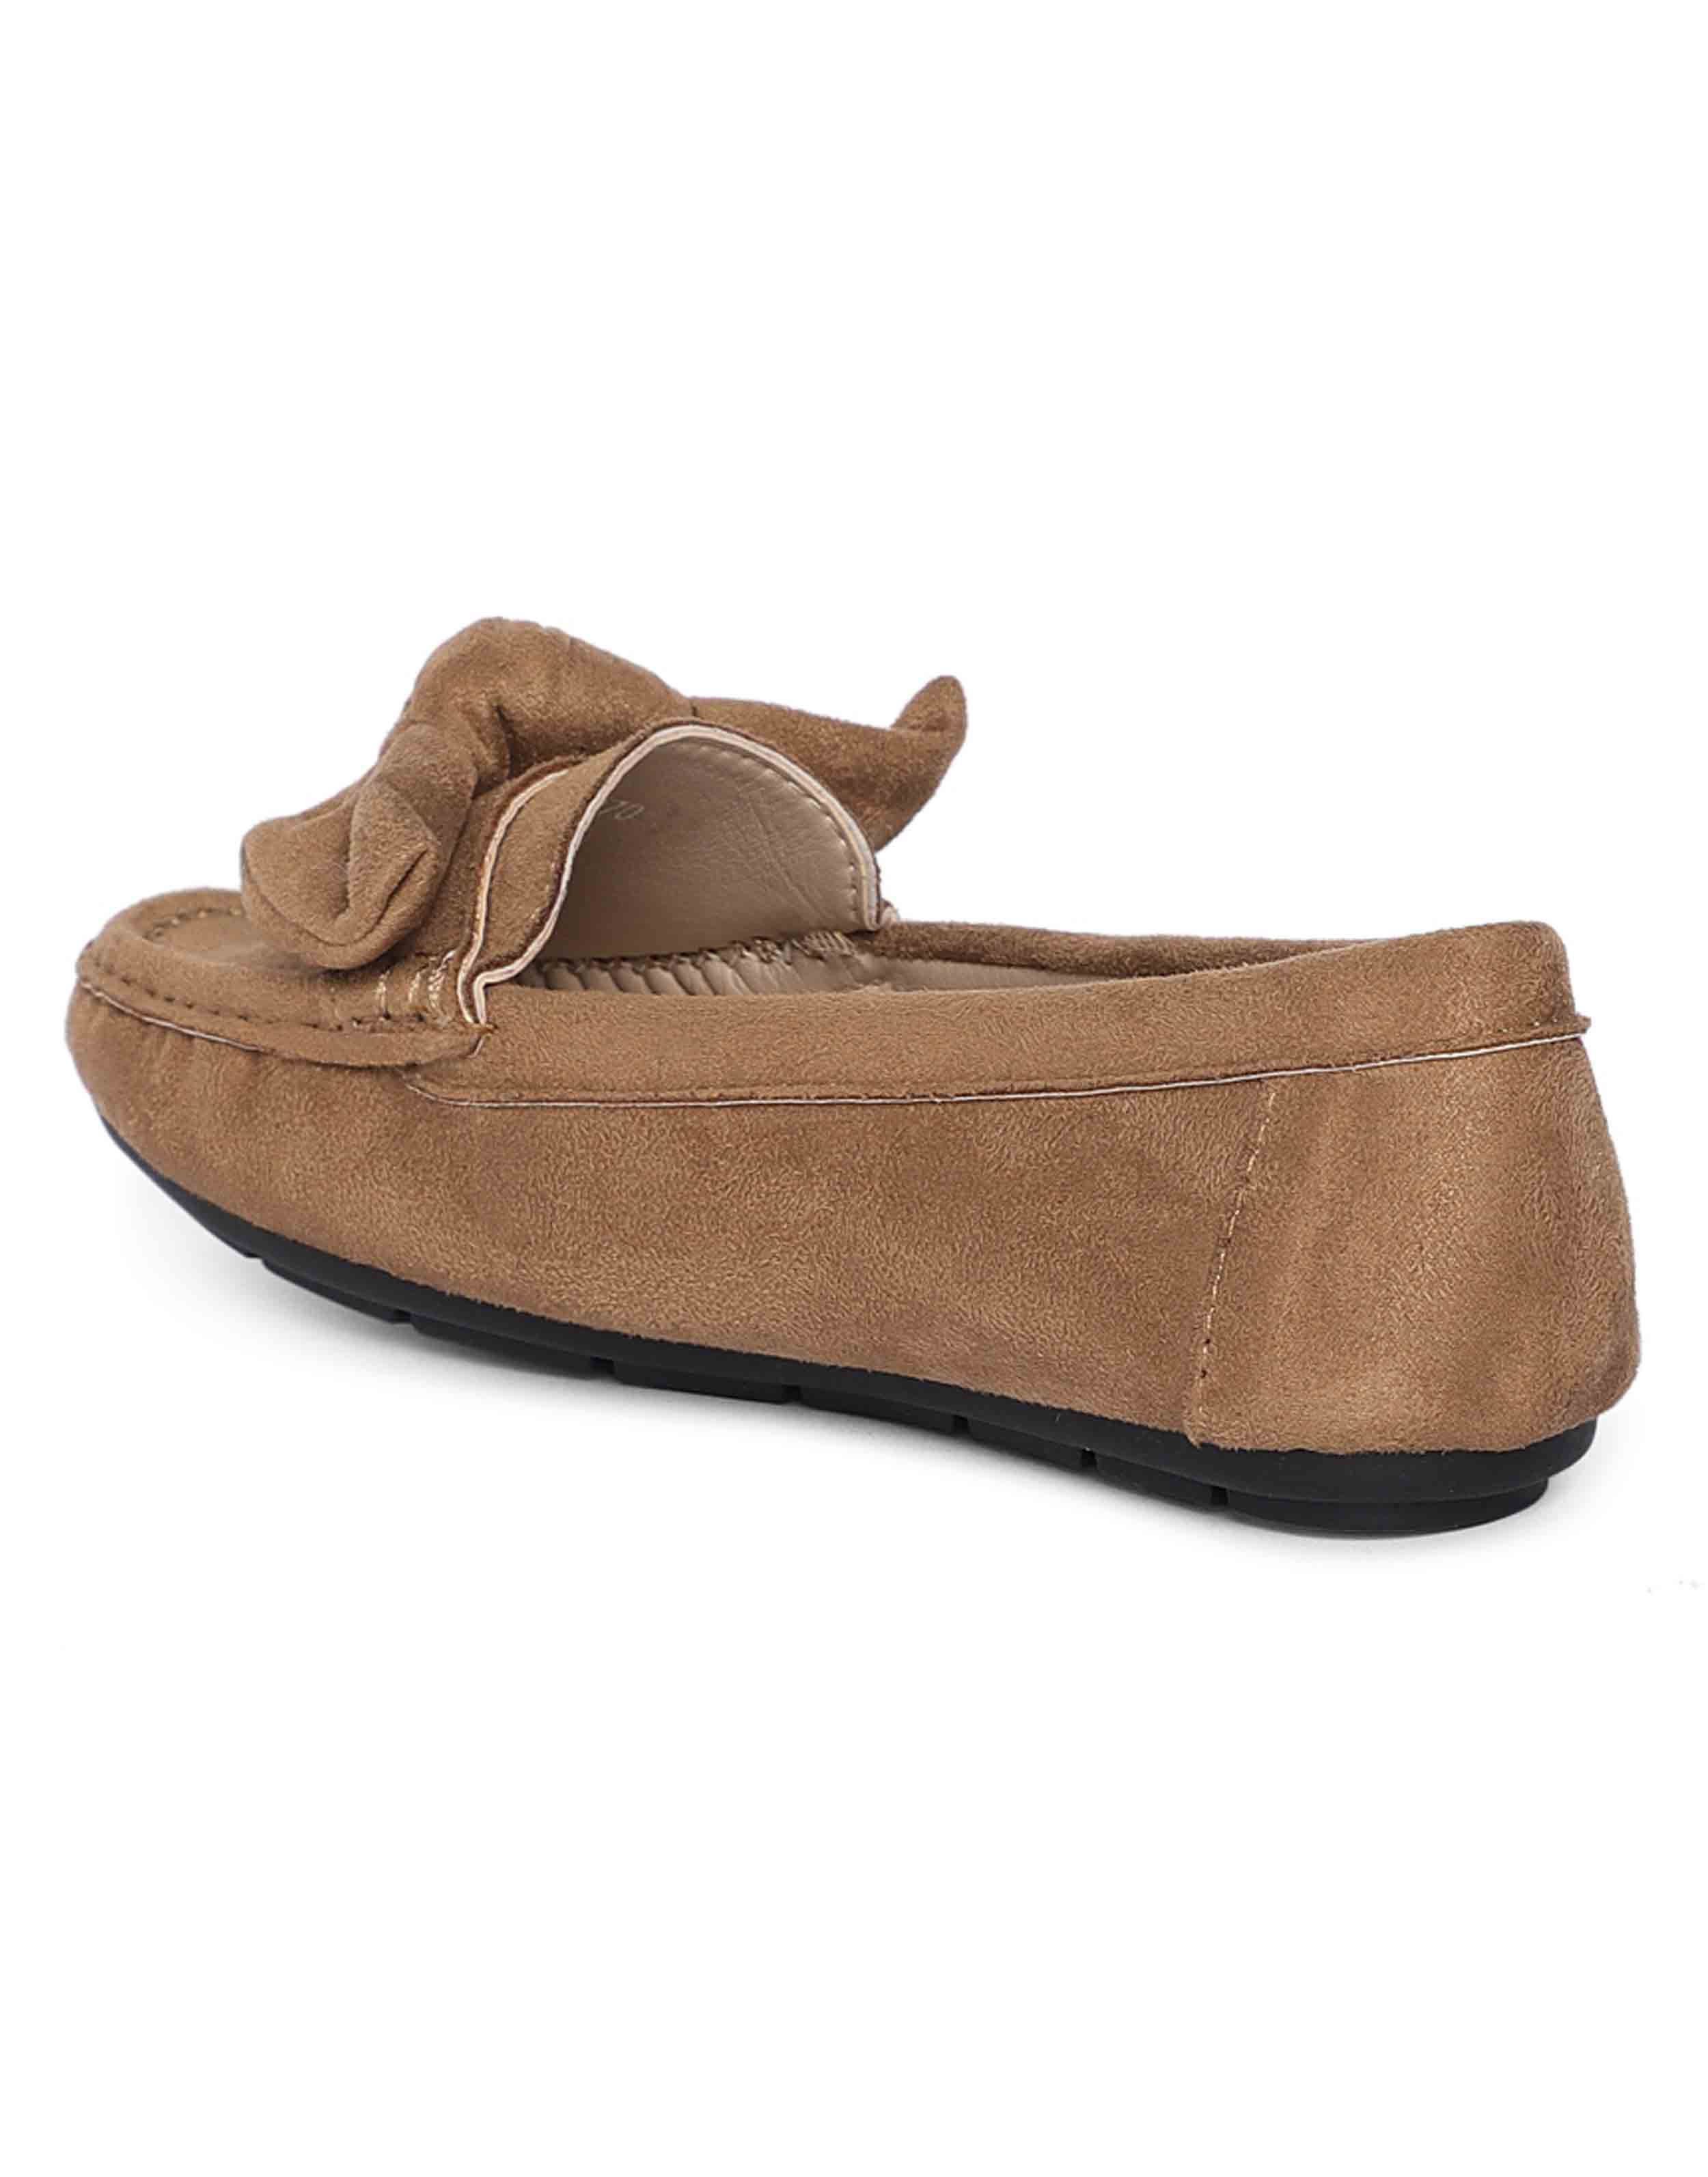 Tan Bow-Tie Loafers3